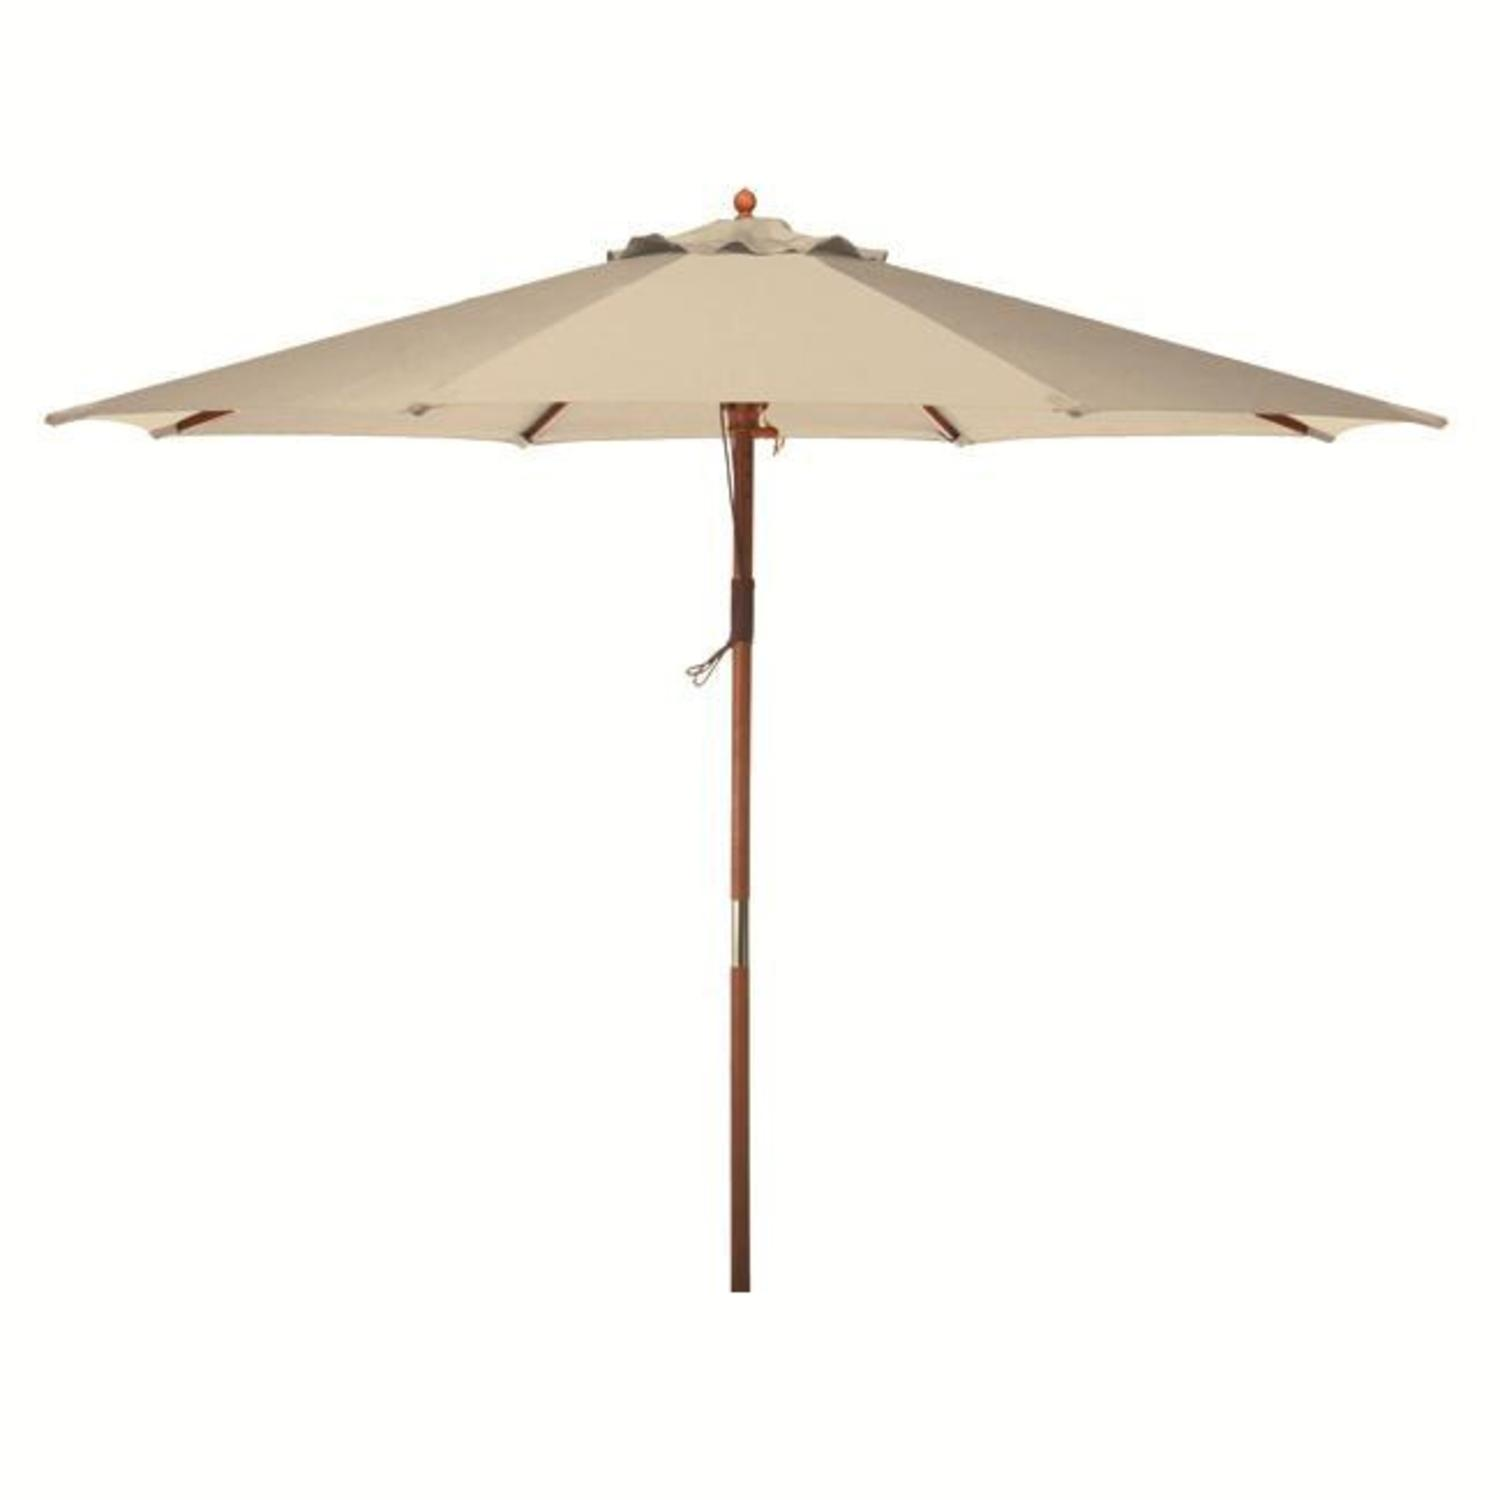 9' Natural Khaki Wooden Outdoor Patio Umbrella by CC Outdoor Living